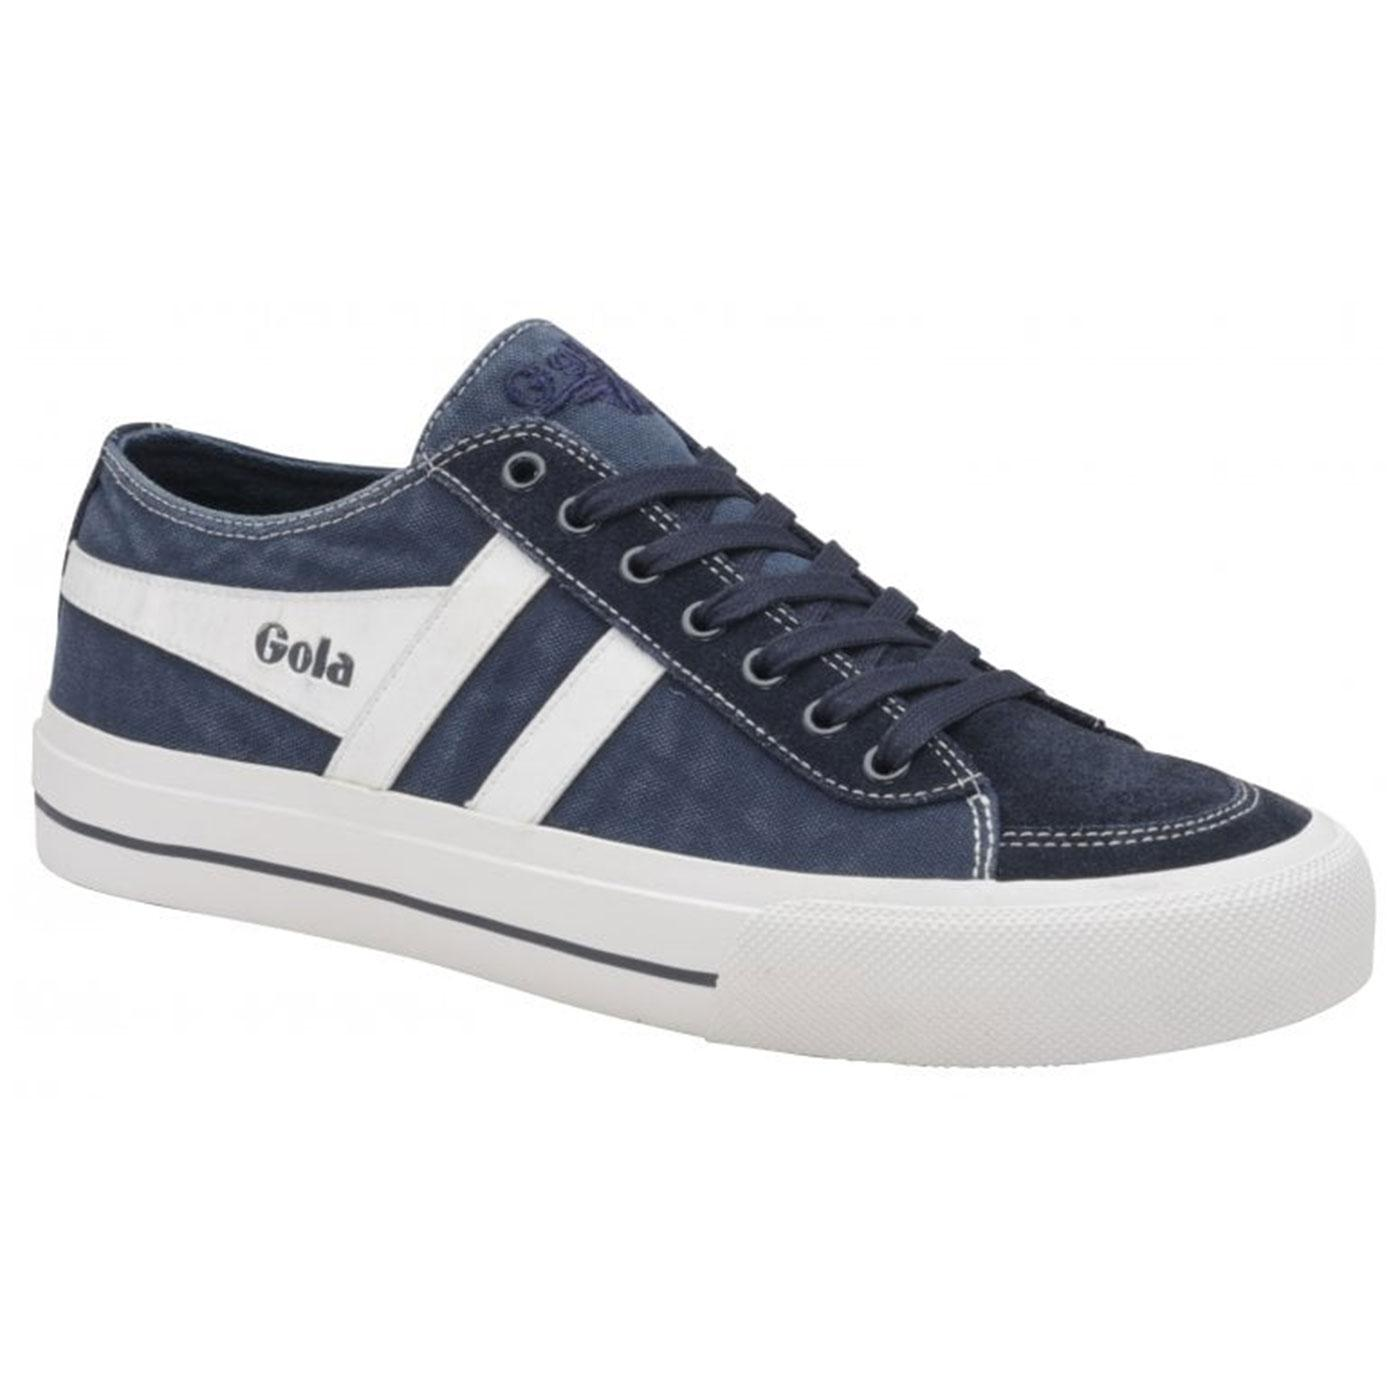 Quota II GOLA Men's Retro Washed Canvas Trainers N